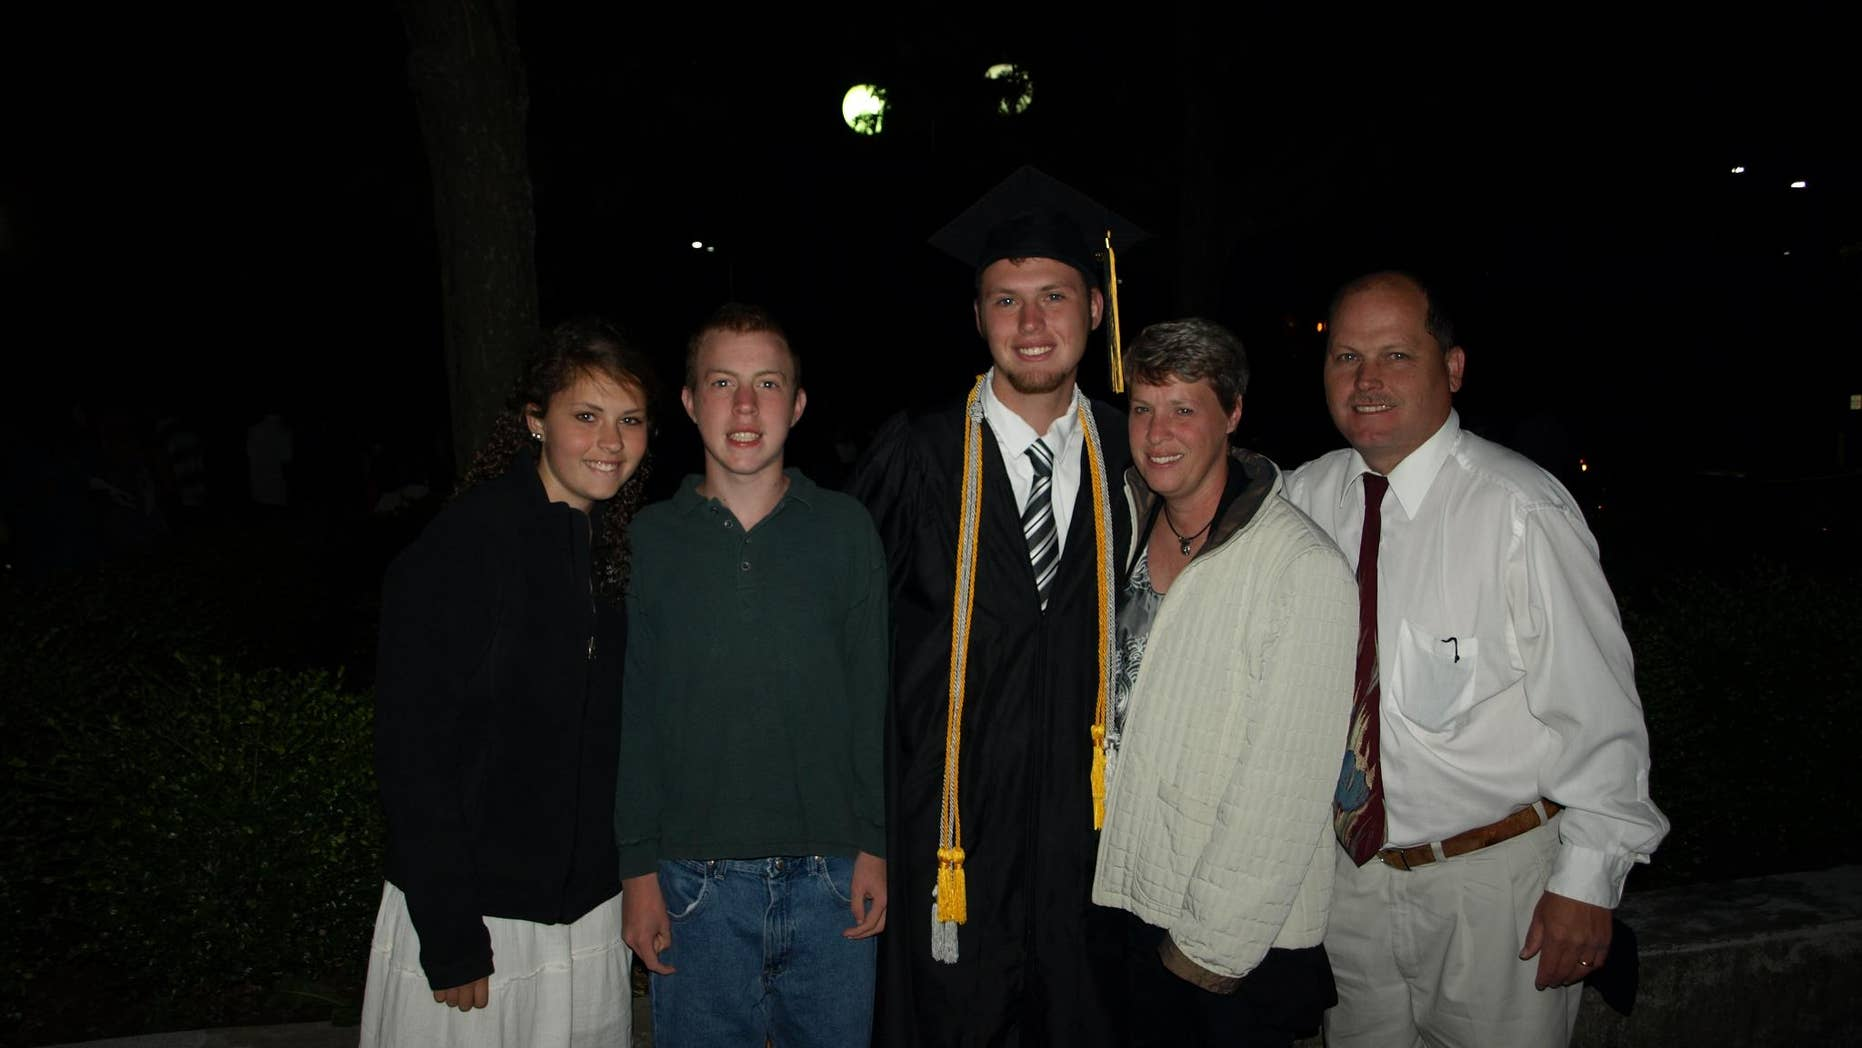 Adam Recke, pictured second from the left, suffers from Type C Niemann-Pick, a fatal neurodegenerative disorder, often called Childhood Alzheimer's.